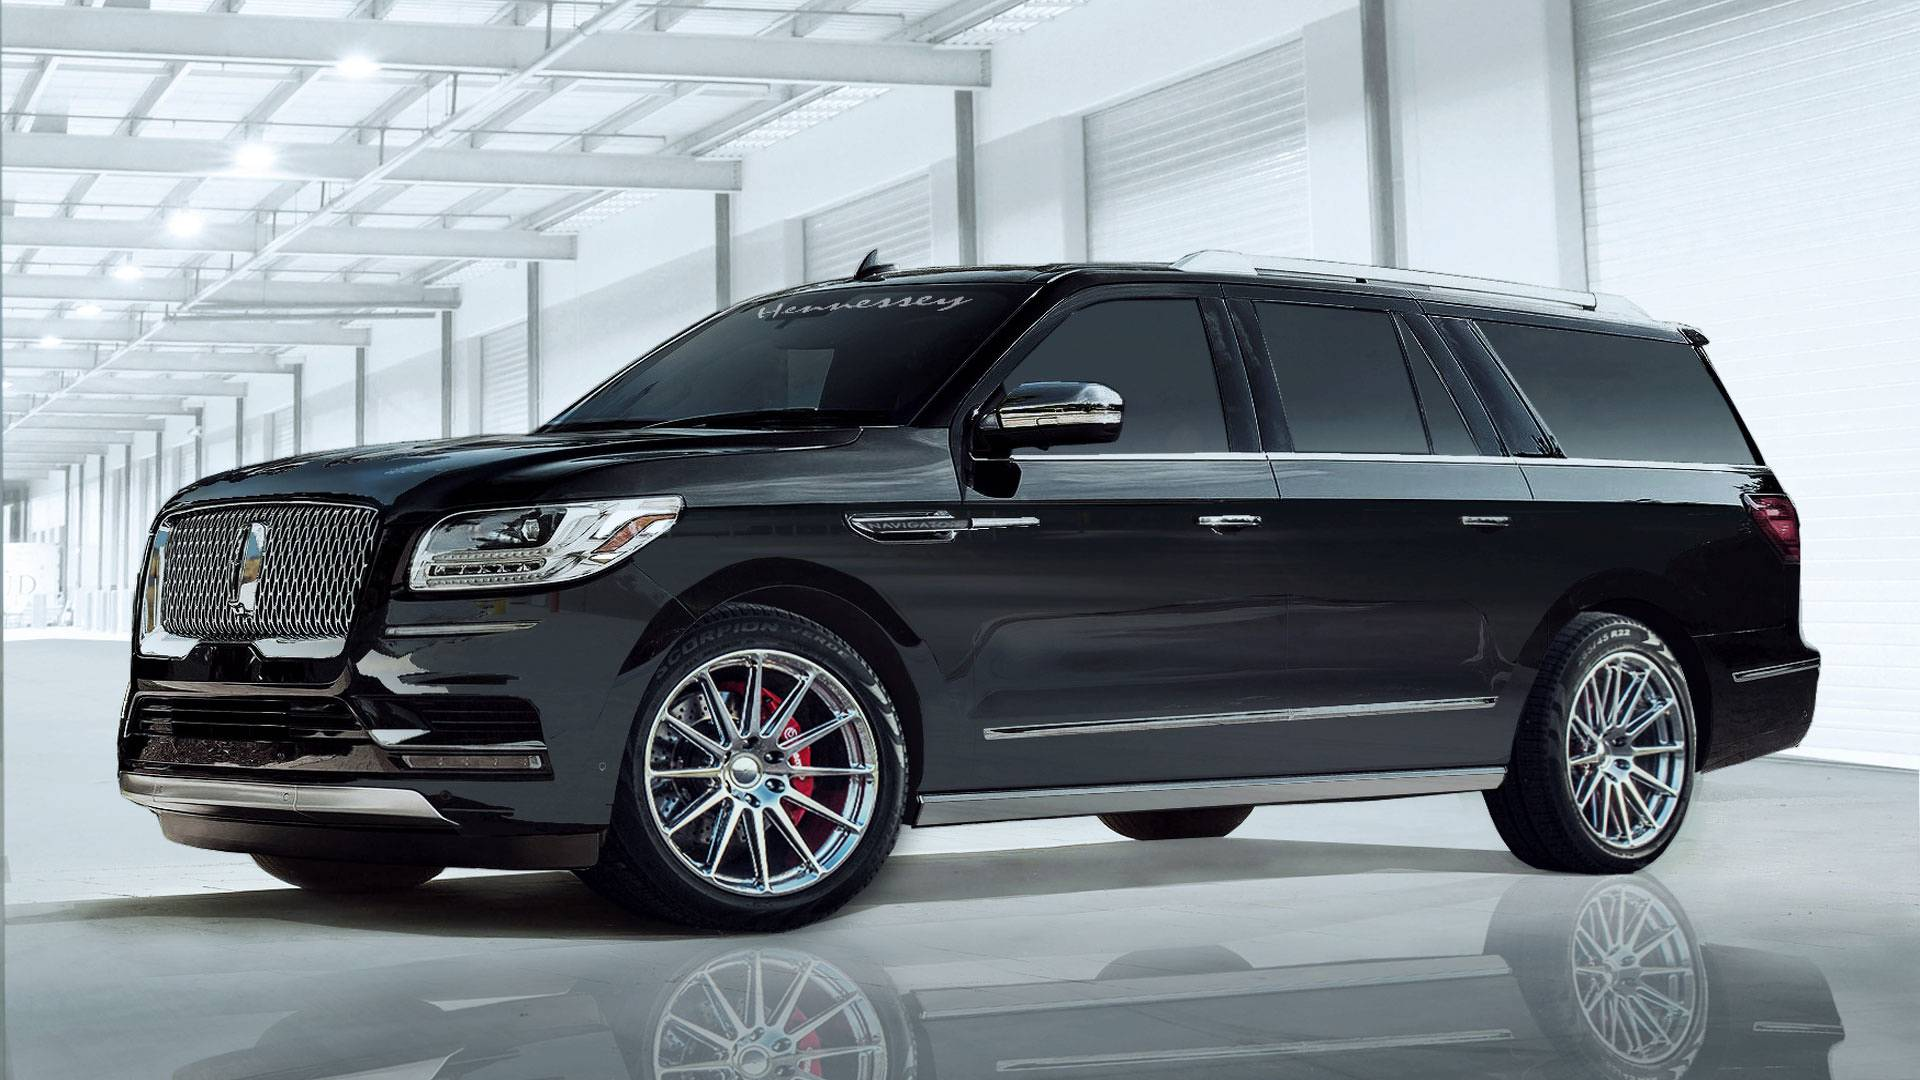 2018 Lincoln Navigator L Tuned By Hennessey to 600 Horsepower - autoevolution